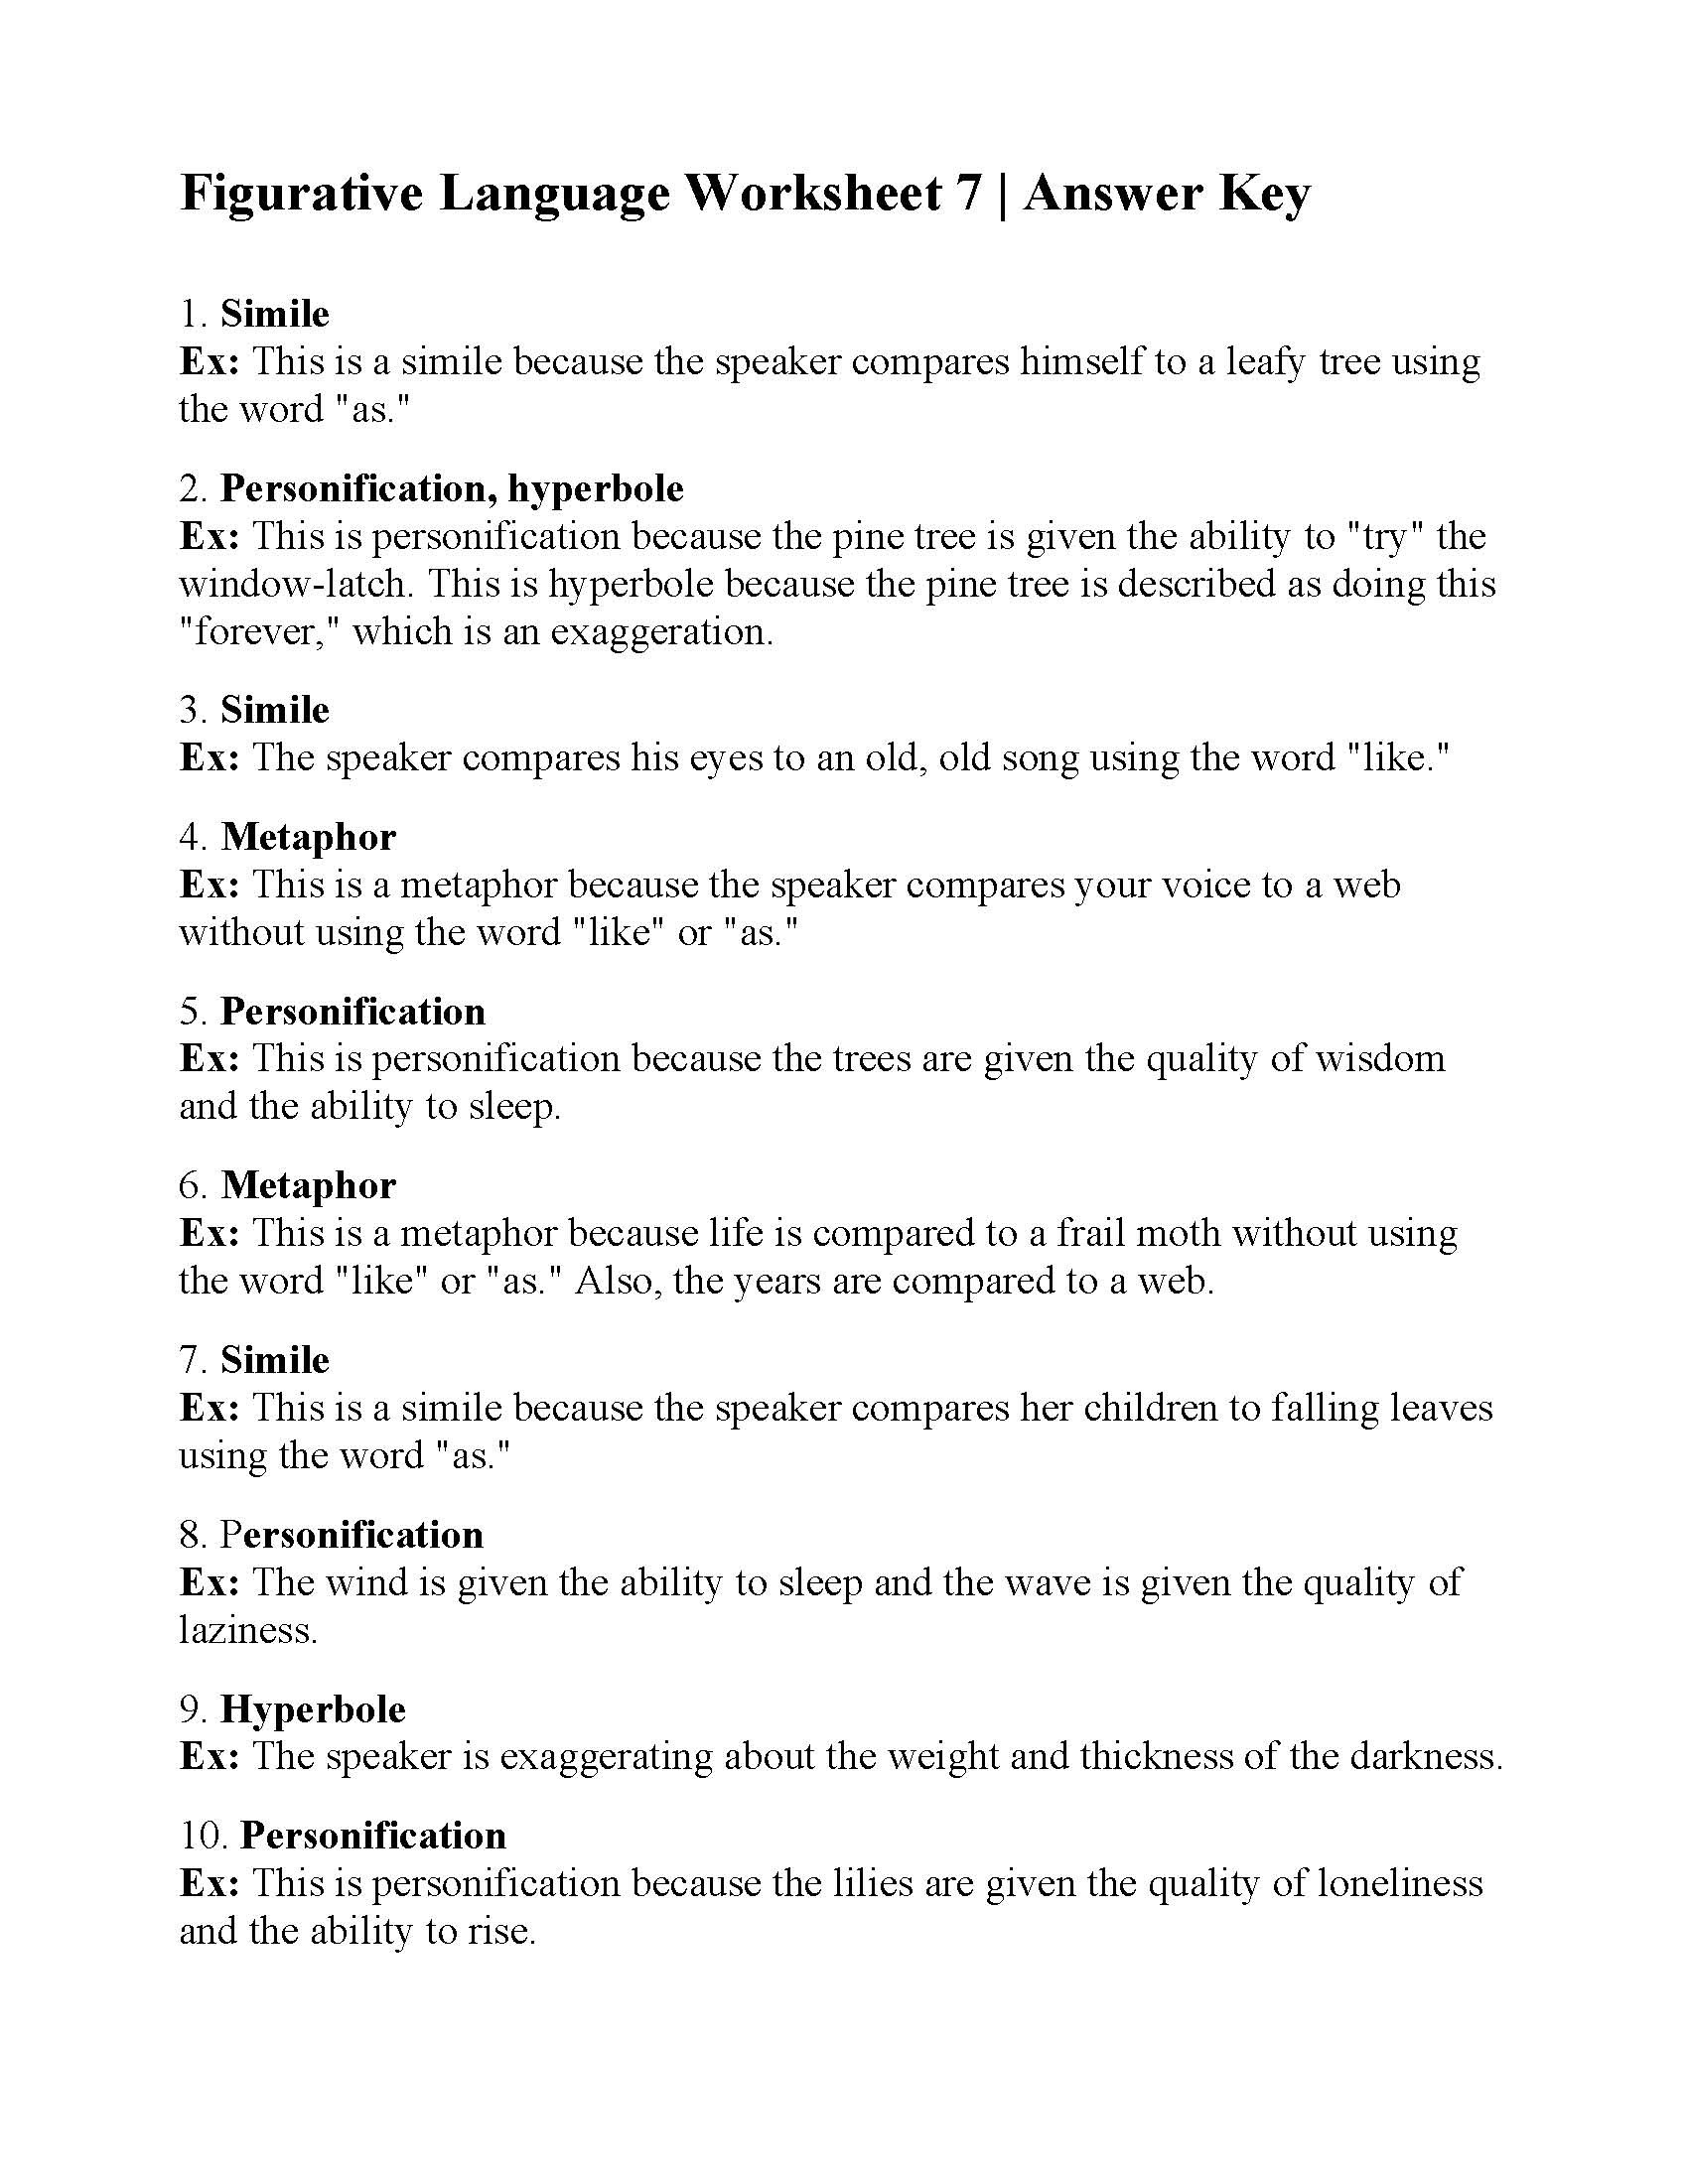 Personification Worksheets for Middle School Mathematics Activities for Elementary School Teachers Make